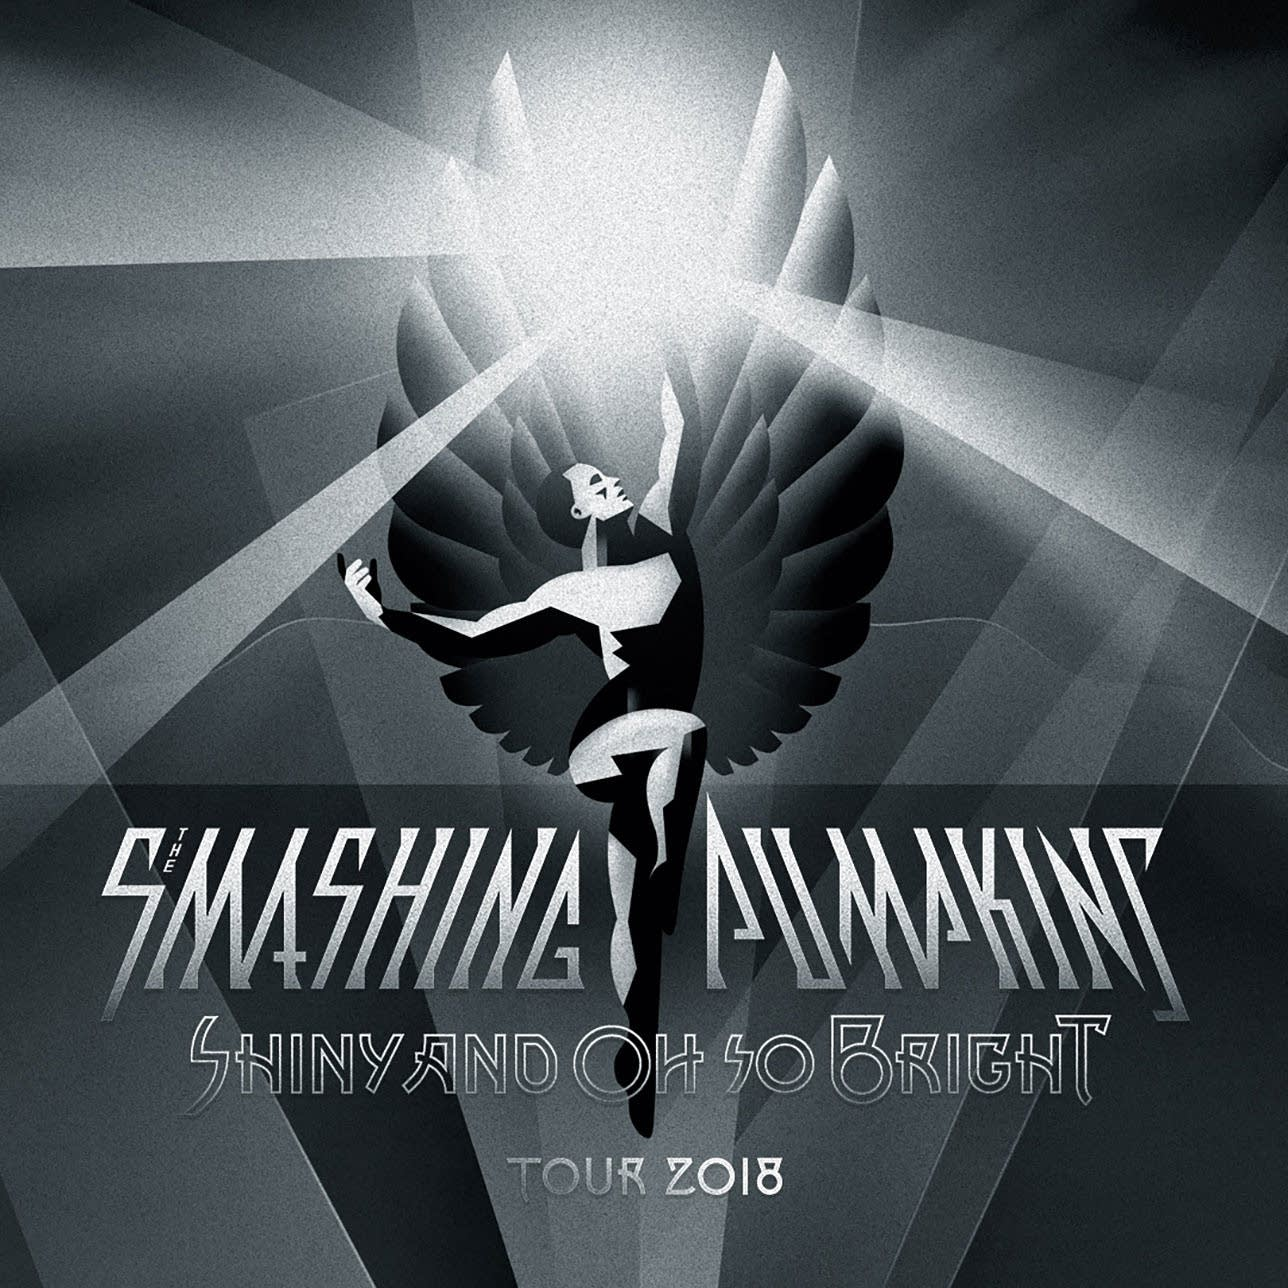 Poster for The Smashing Pumpkins' 2018 tour, Shiny and Oh So Bright.